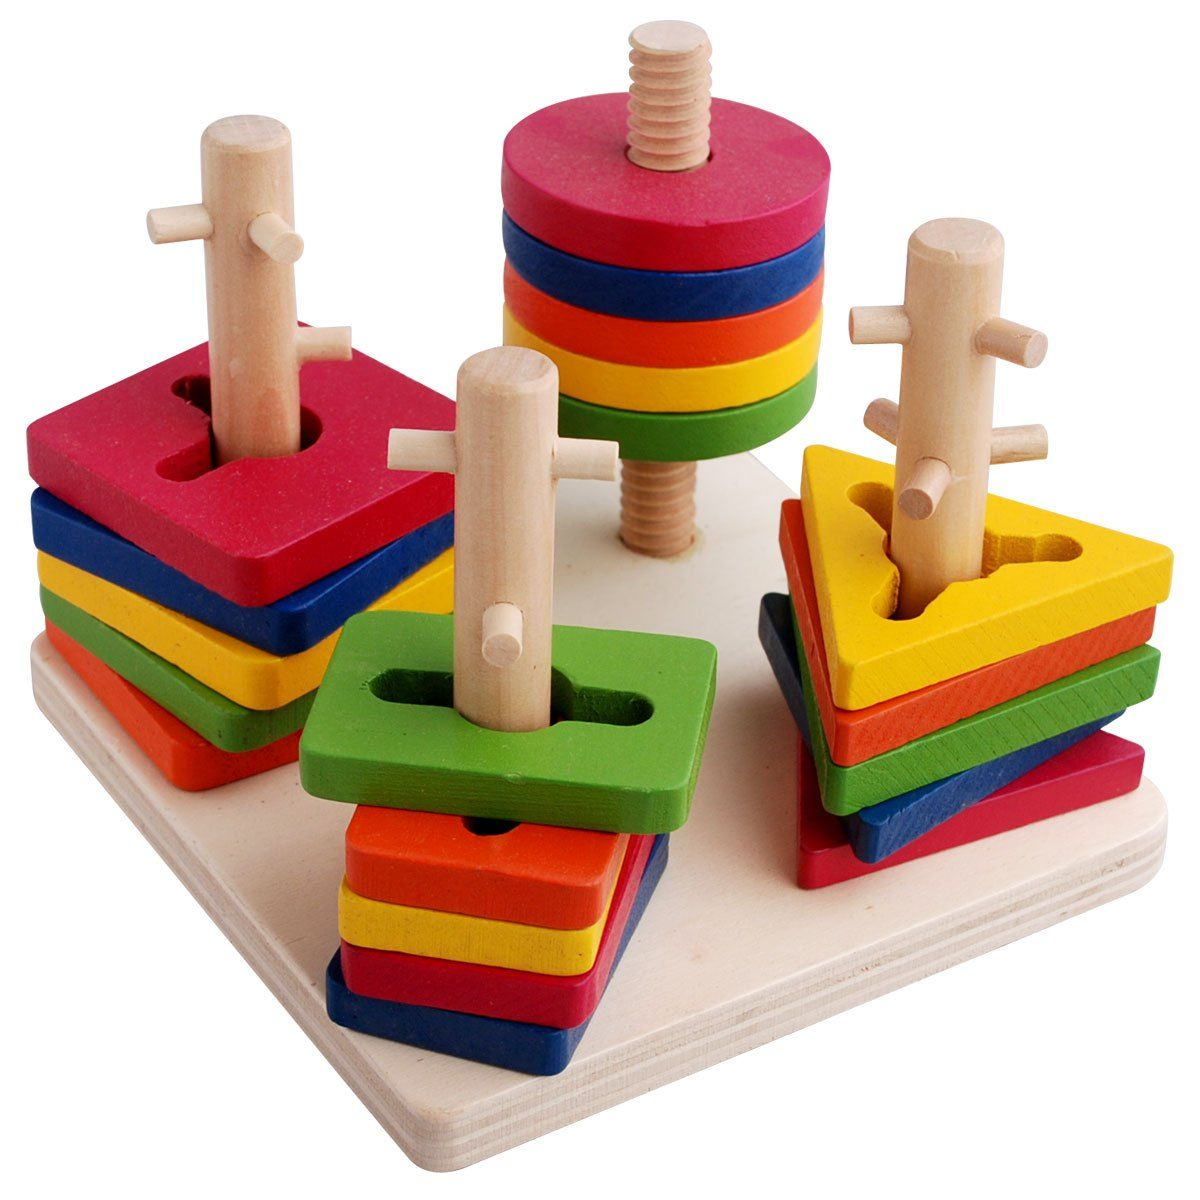 cheap blocks on sale at bargain price, buy quality toy gift